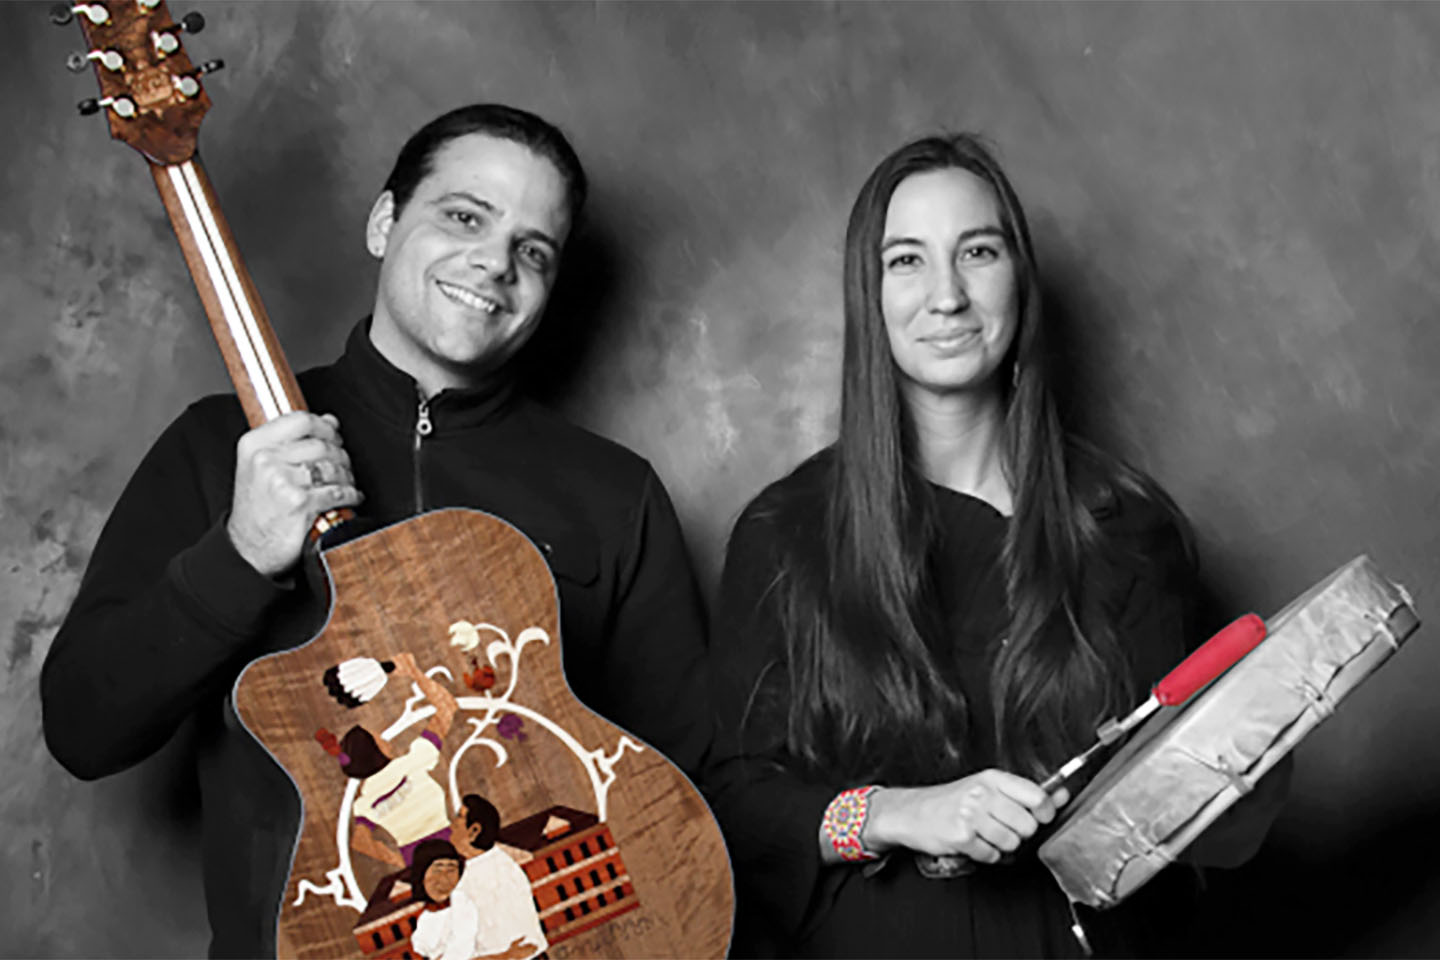 Spirits Rising, a dynamic musical duo featuring Native American singers and songwriters Allison Radell and Joe Reilly – will be performing at 8 p.m. on Saturday, Jan. 28.